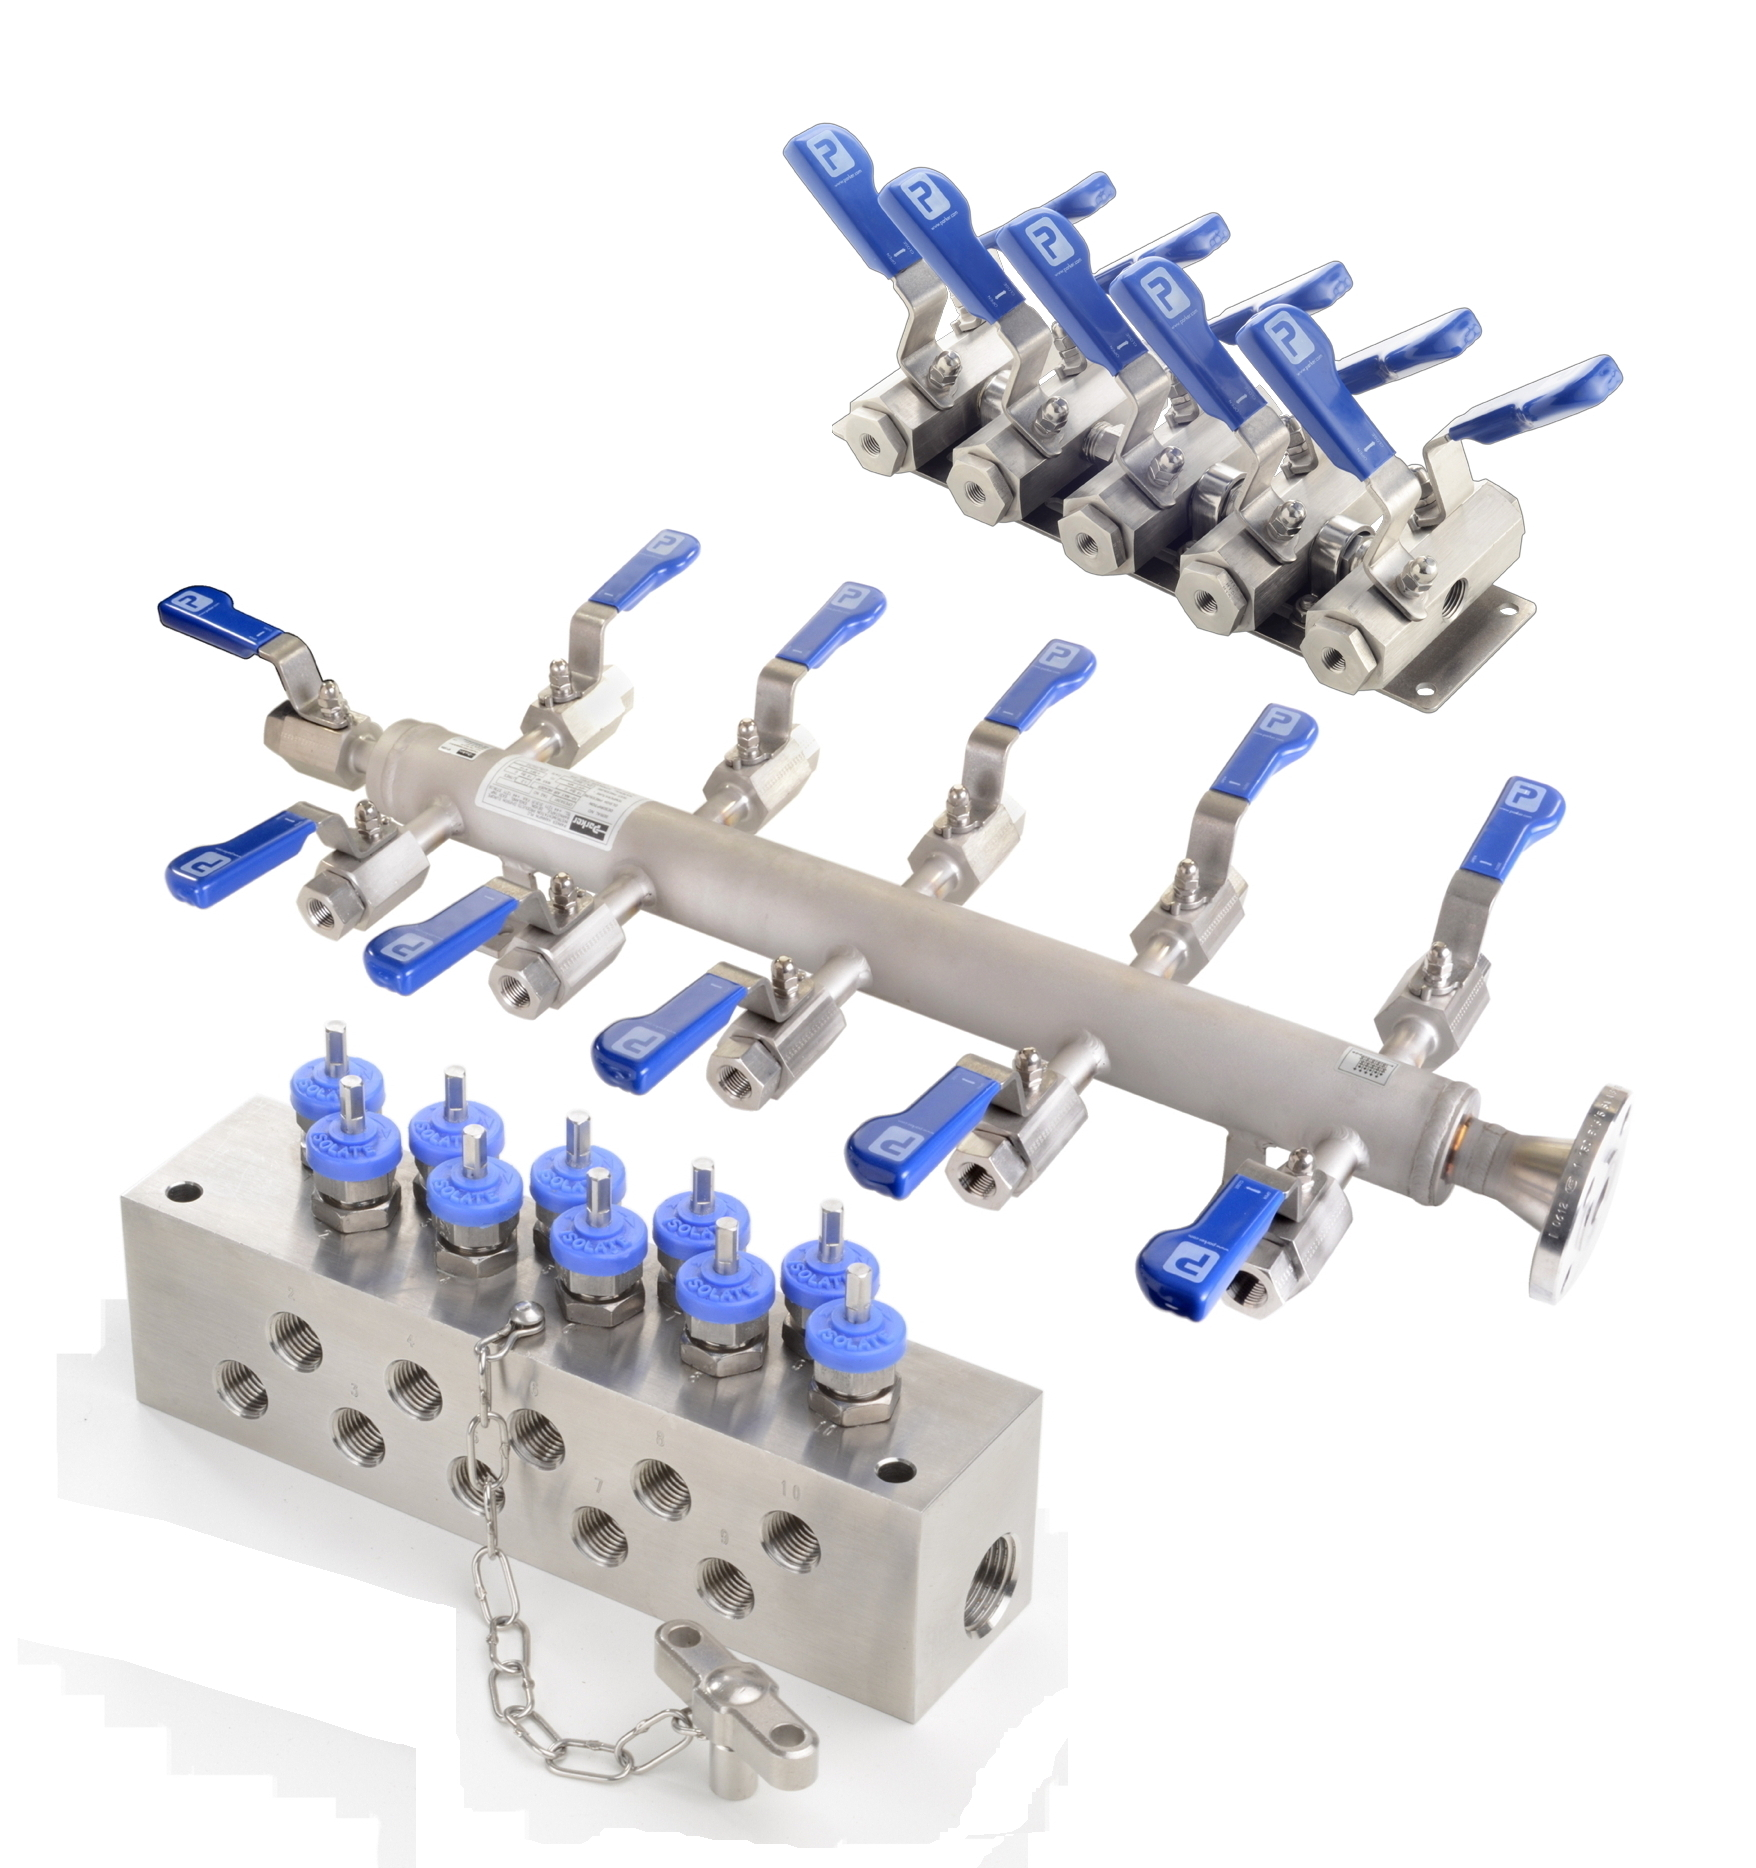 High Pressure Manifold : Modular distribution manifolds are configurable for